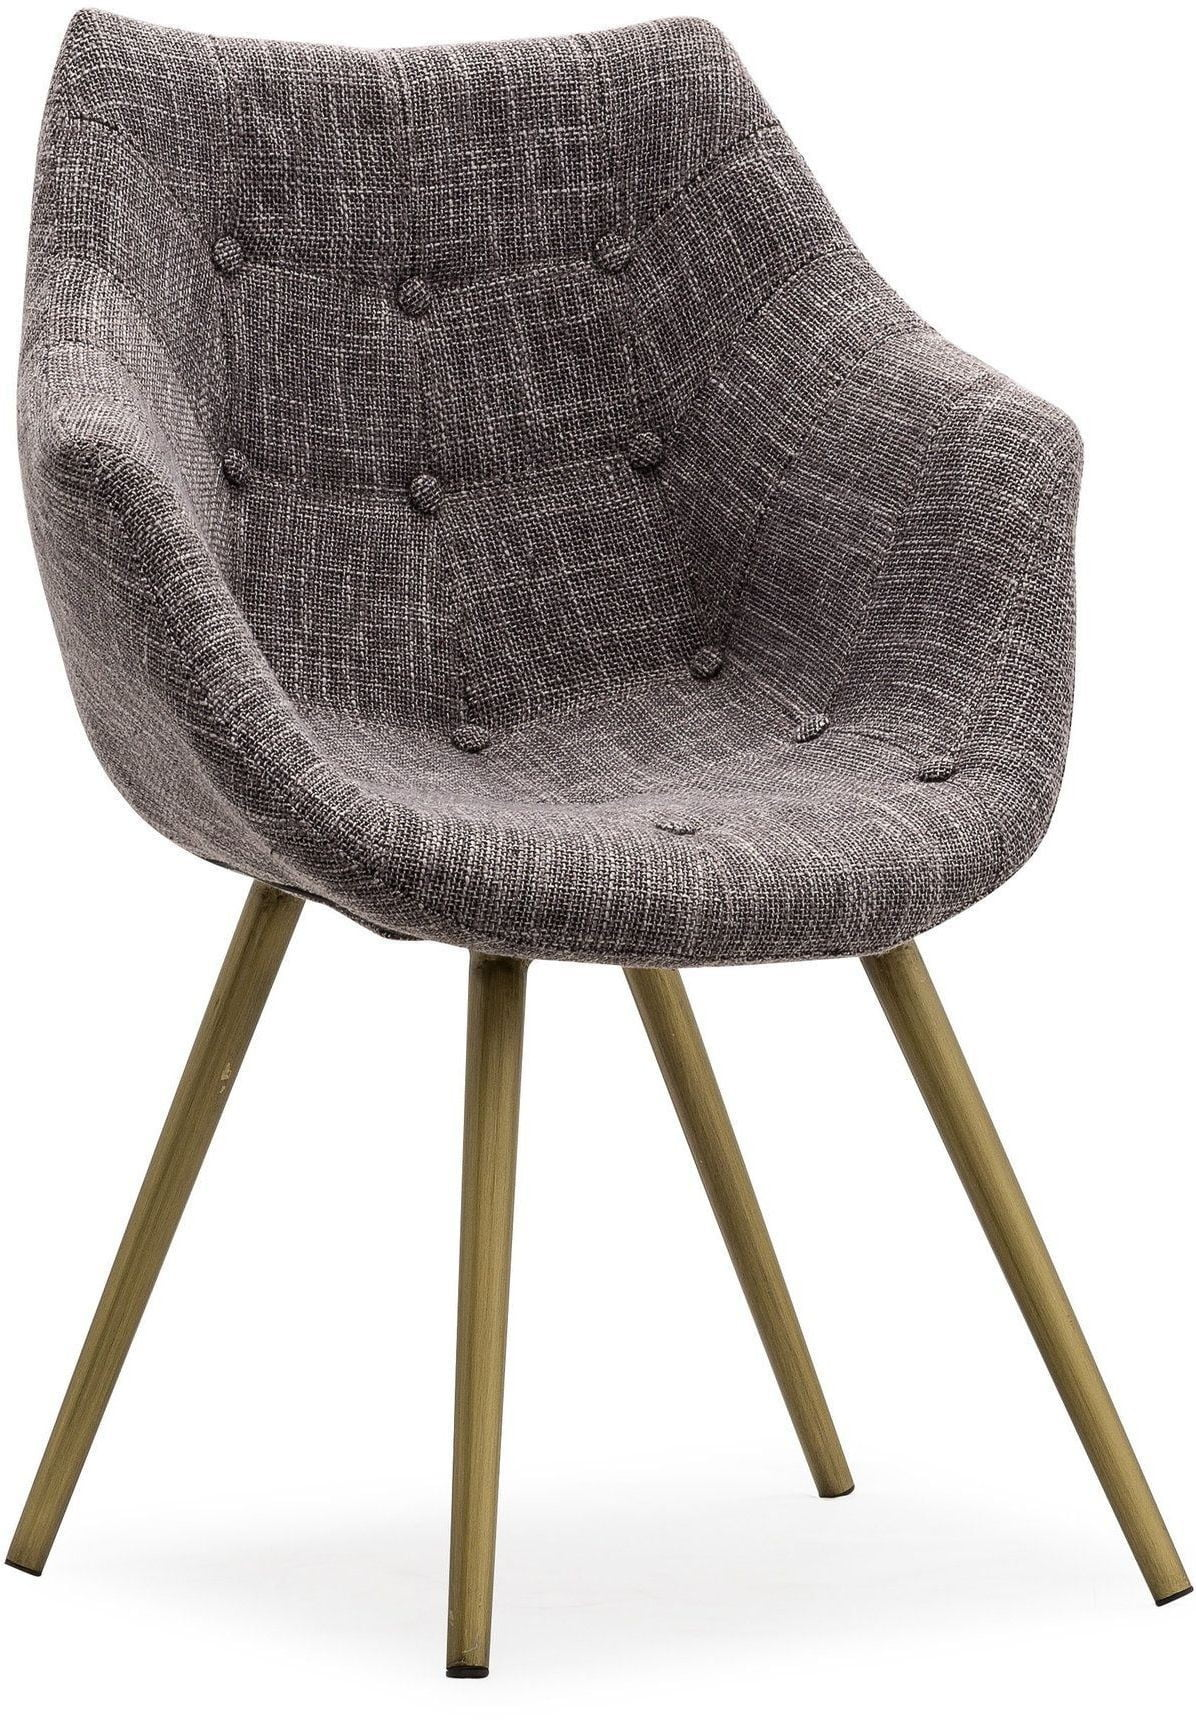 Tweed Chair Finn Grey Tweed Chair G5456 Tov Furniture